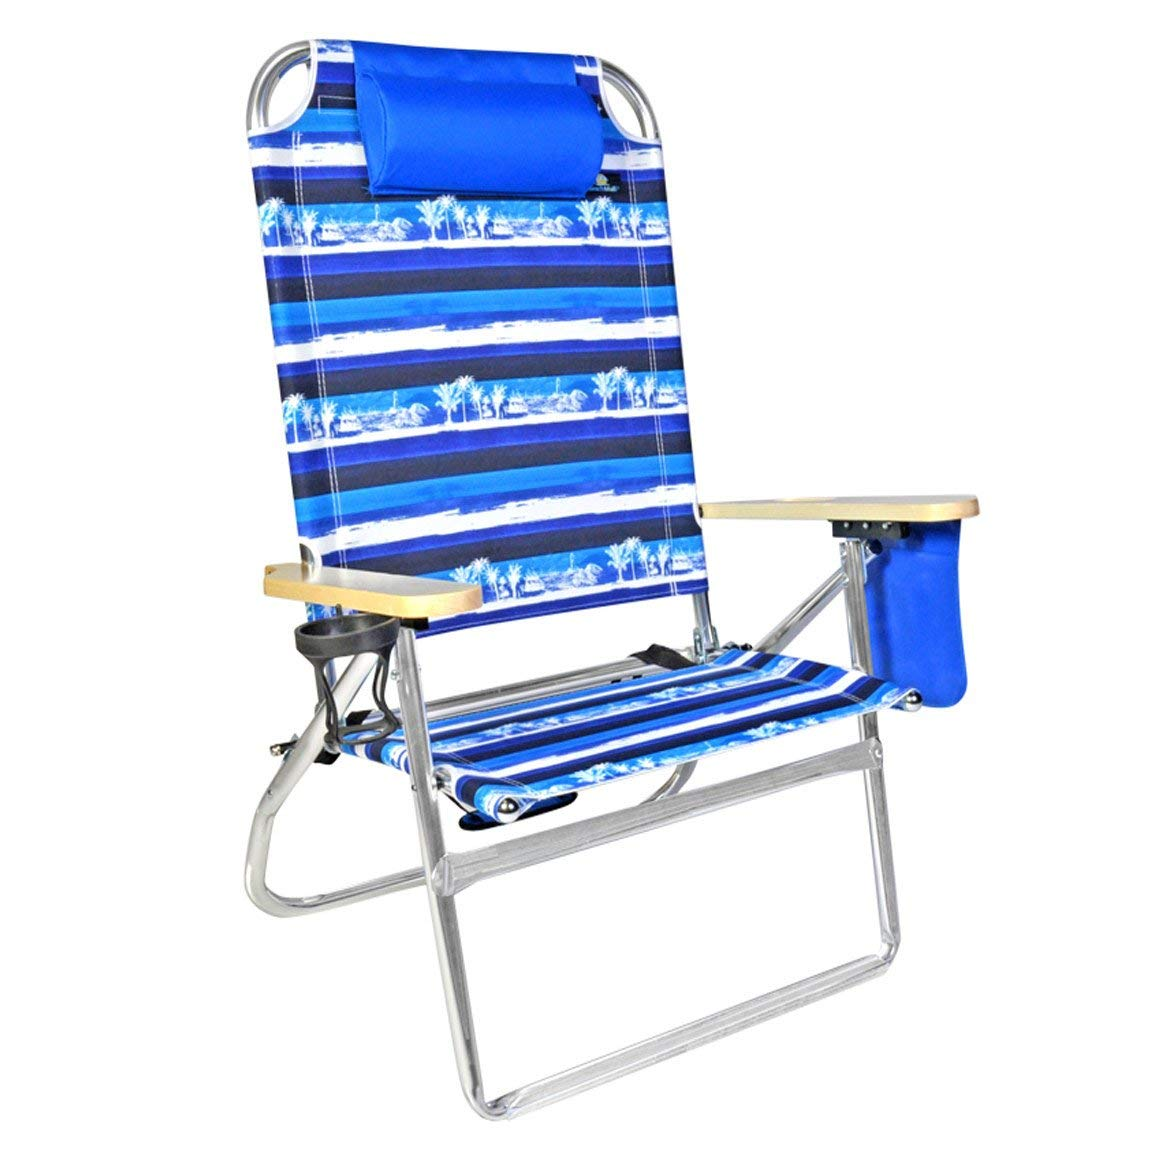 Review of Extra Large - High Seat Heavy Duty 4 Position Beach Chair w/Drink Holder